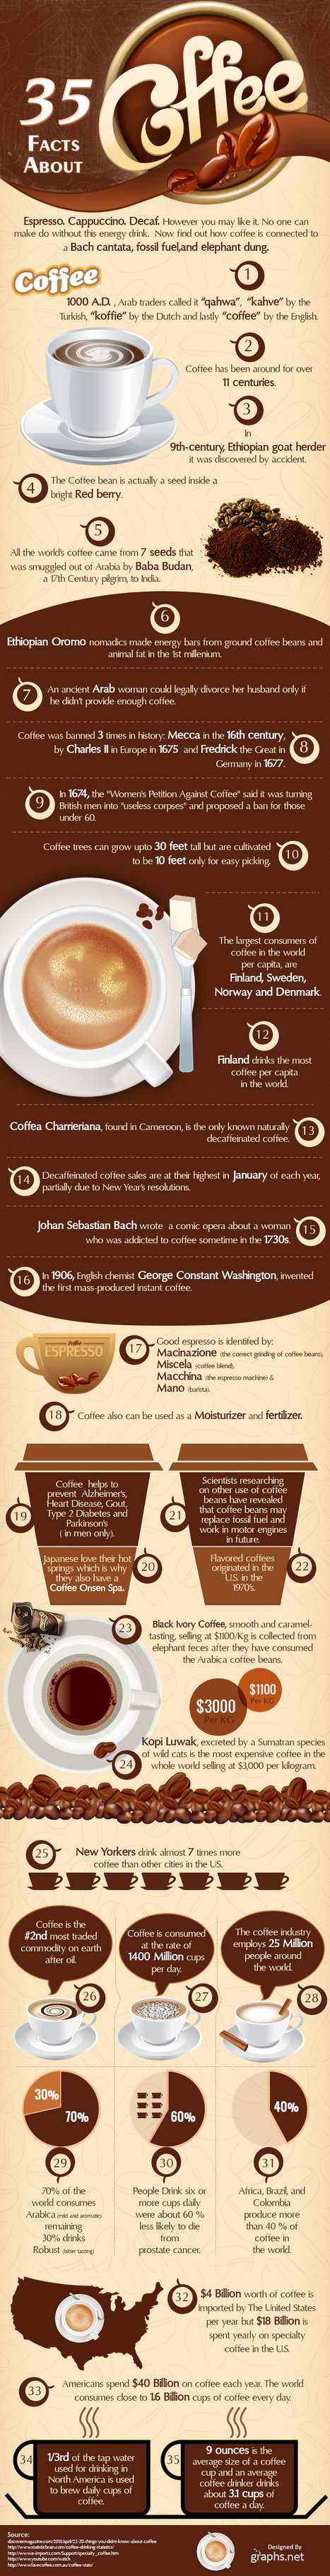 35 Facts about Coffee | Diet for good health | Scoop.it